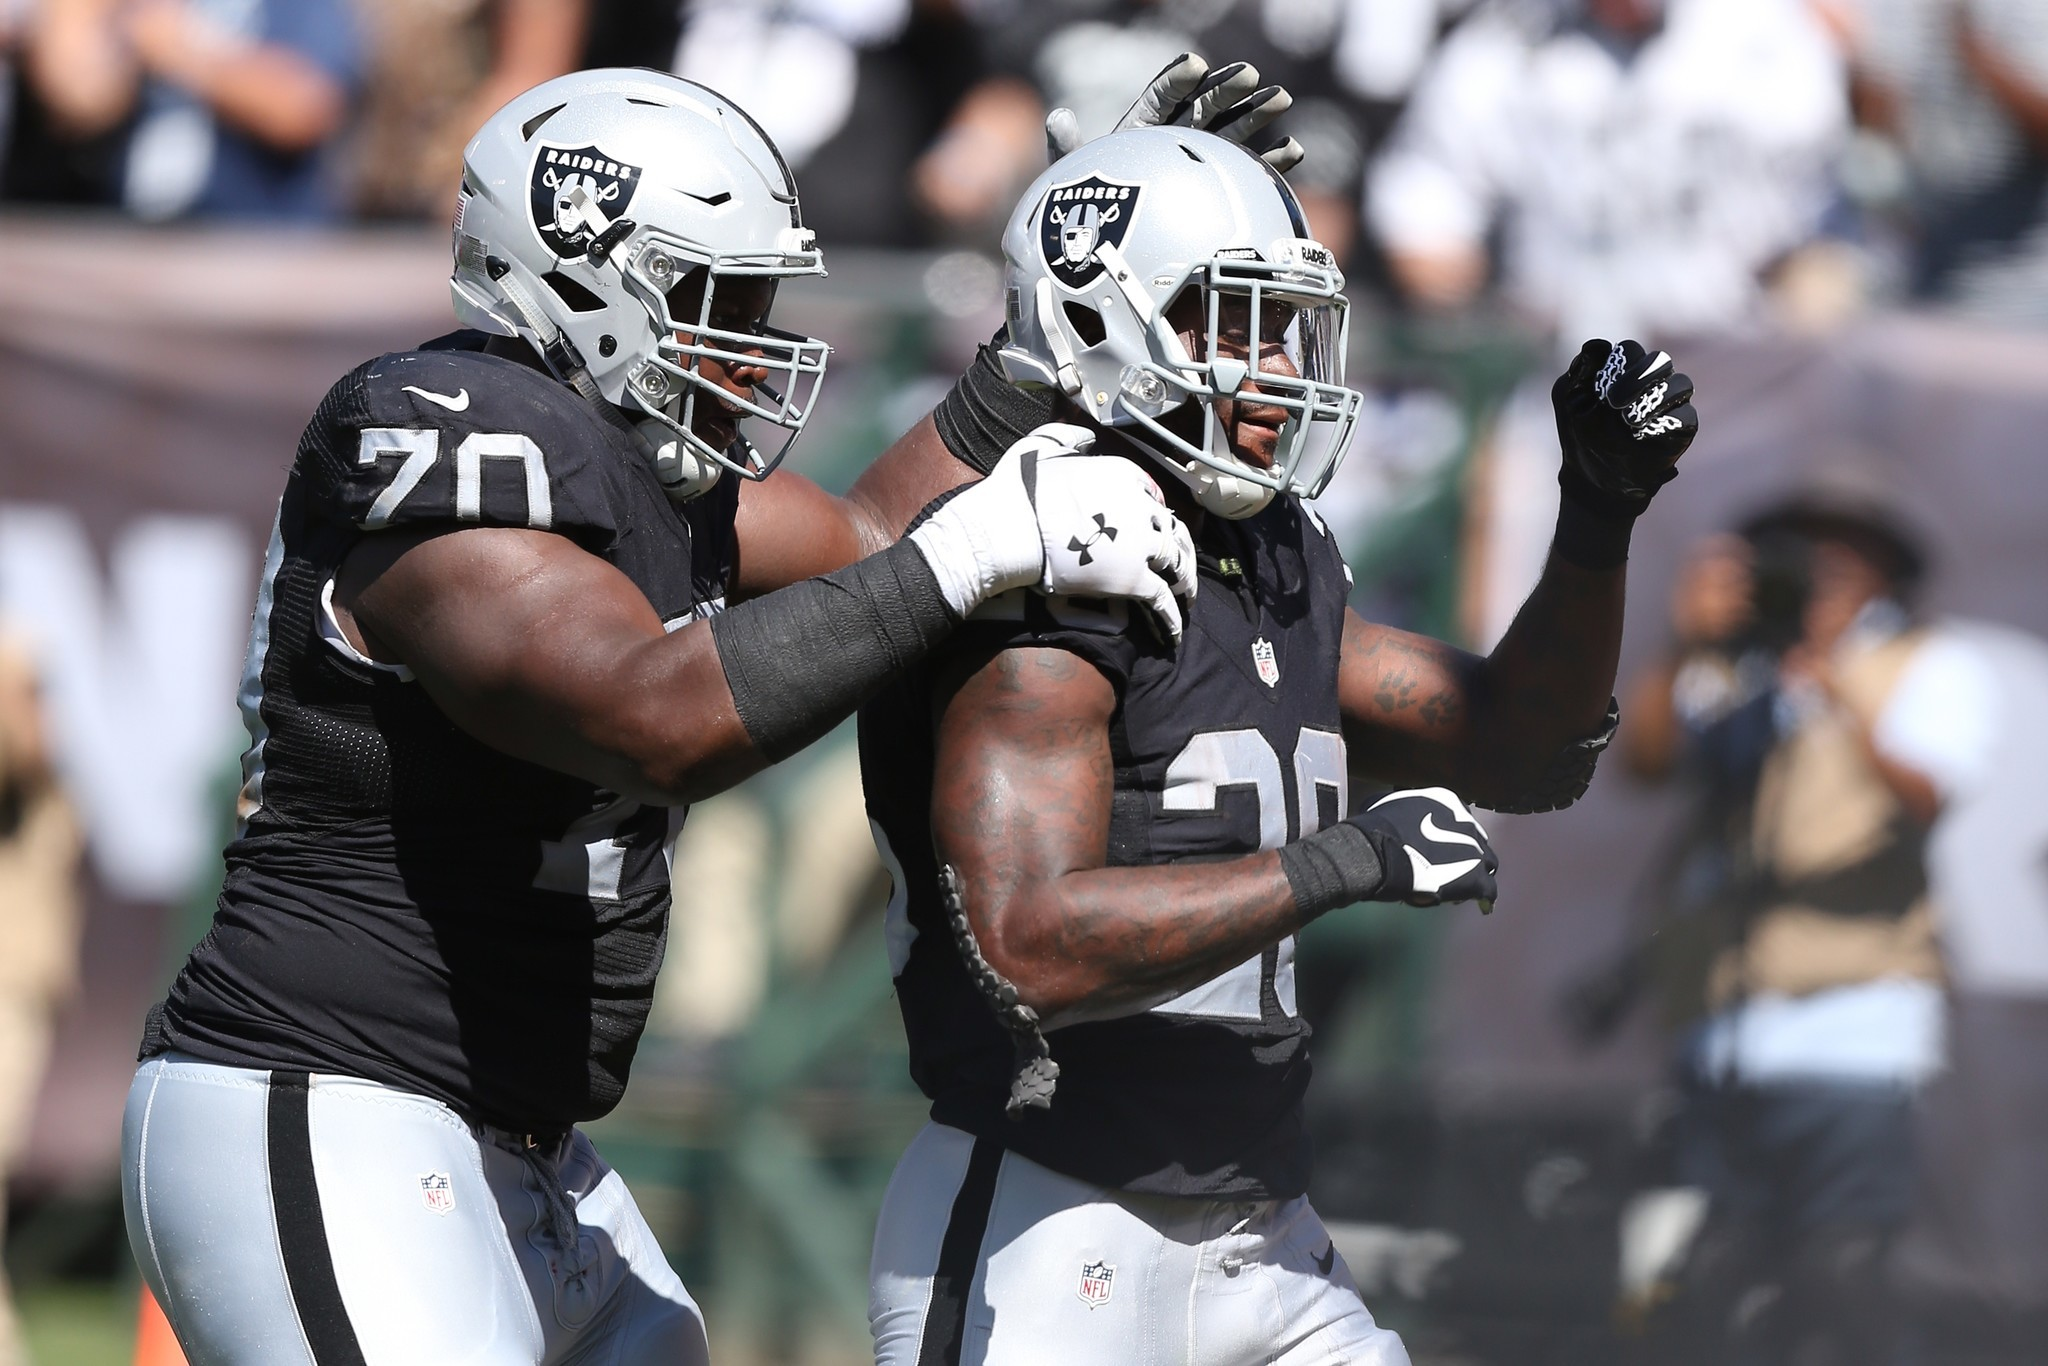 For Kelechi Osemele playing the Ravens is not just another game